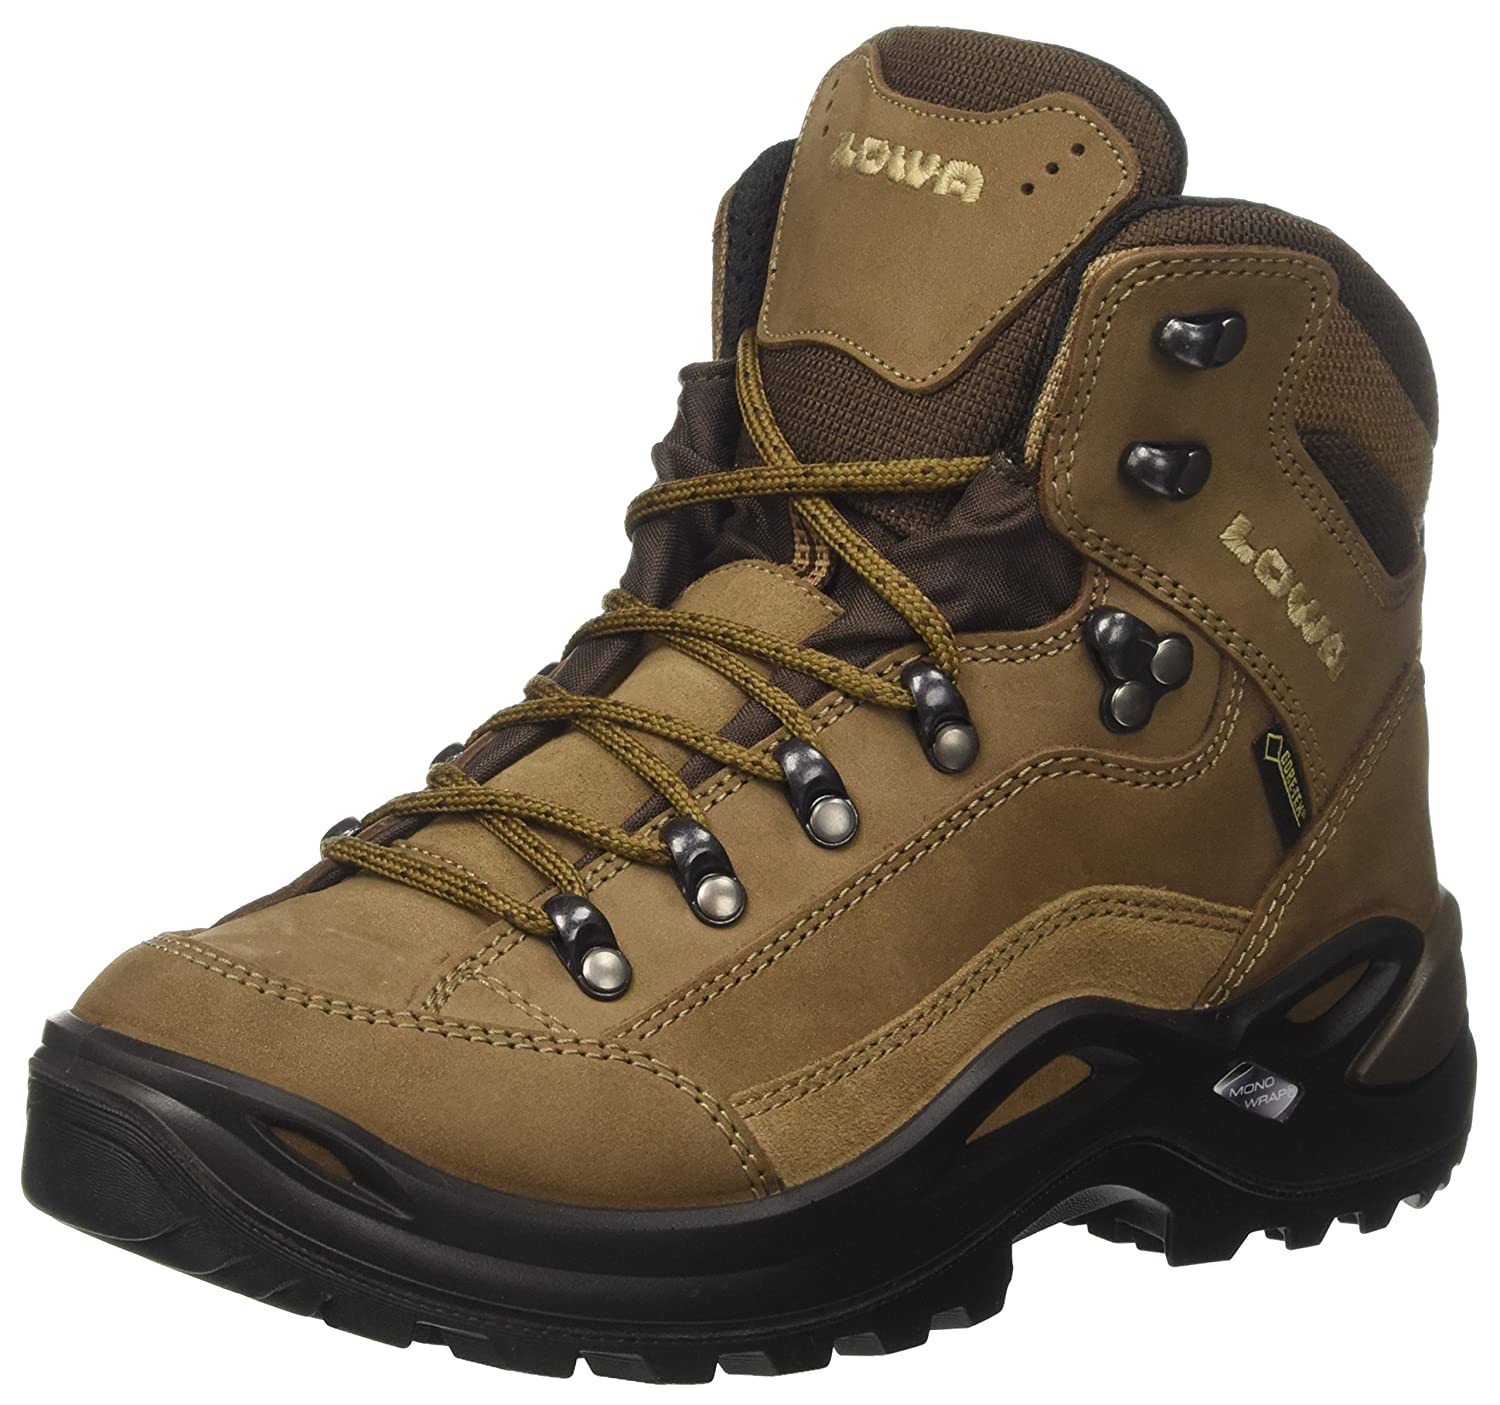 Lowa Women's Renegade GTX Mid Hiking Boot B004S59J6O 6.5 B(M) US|Sepia